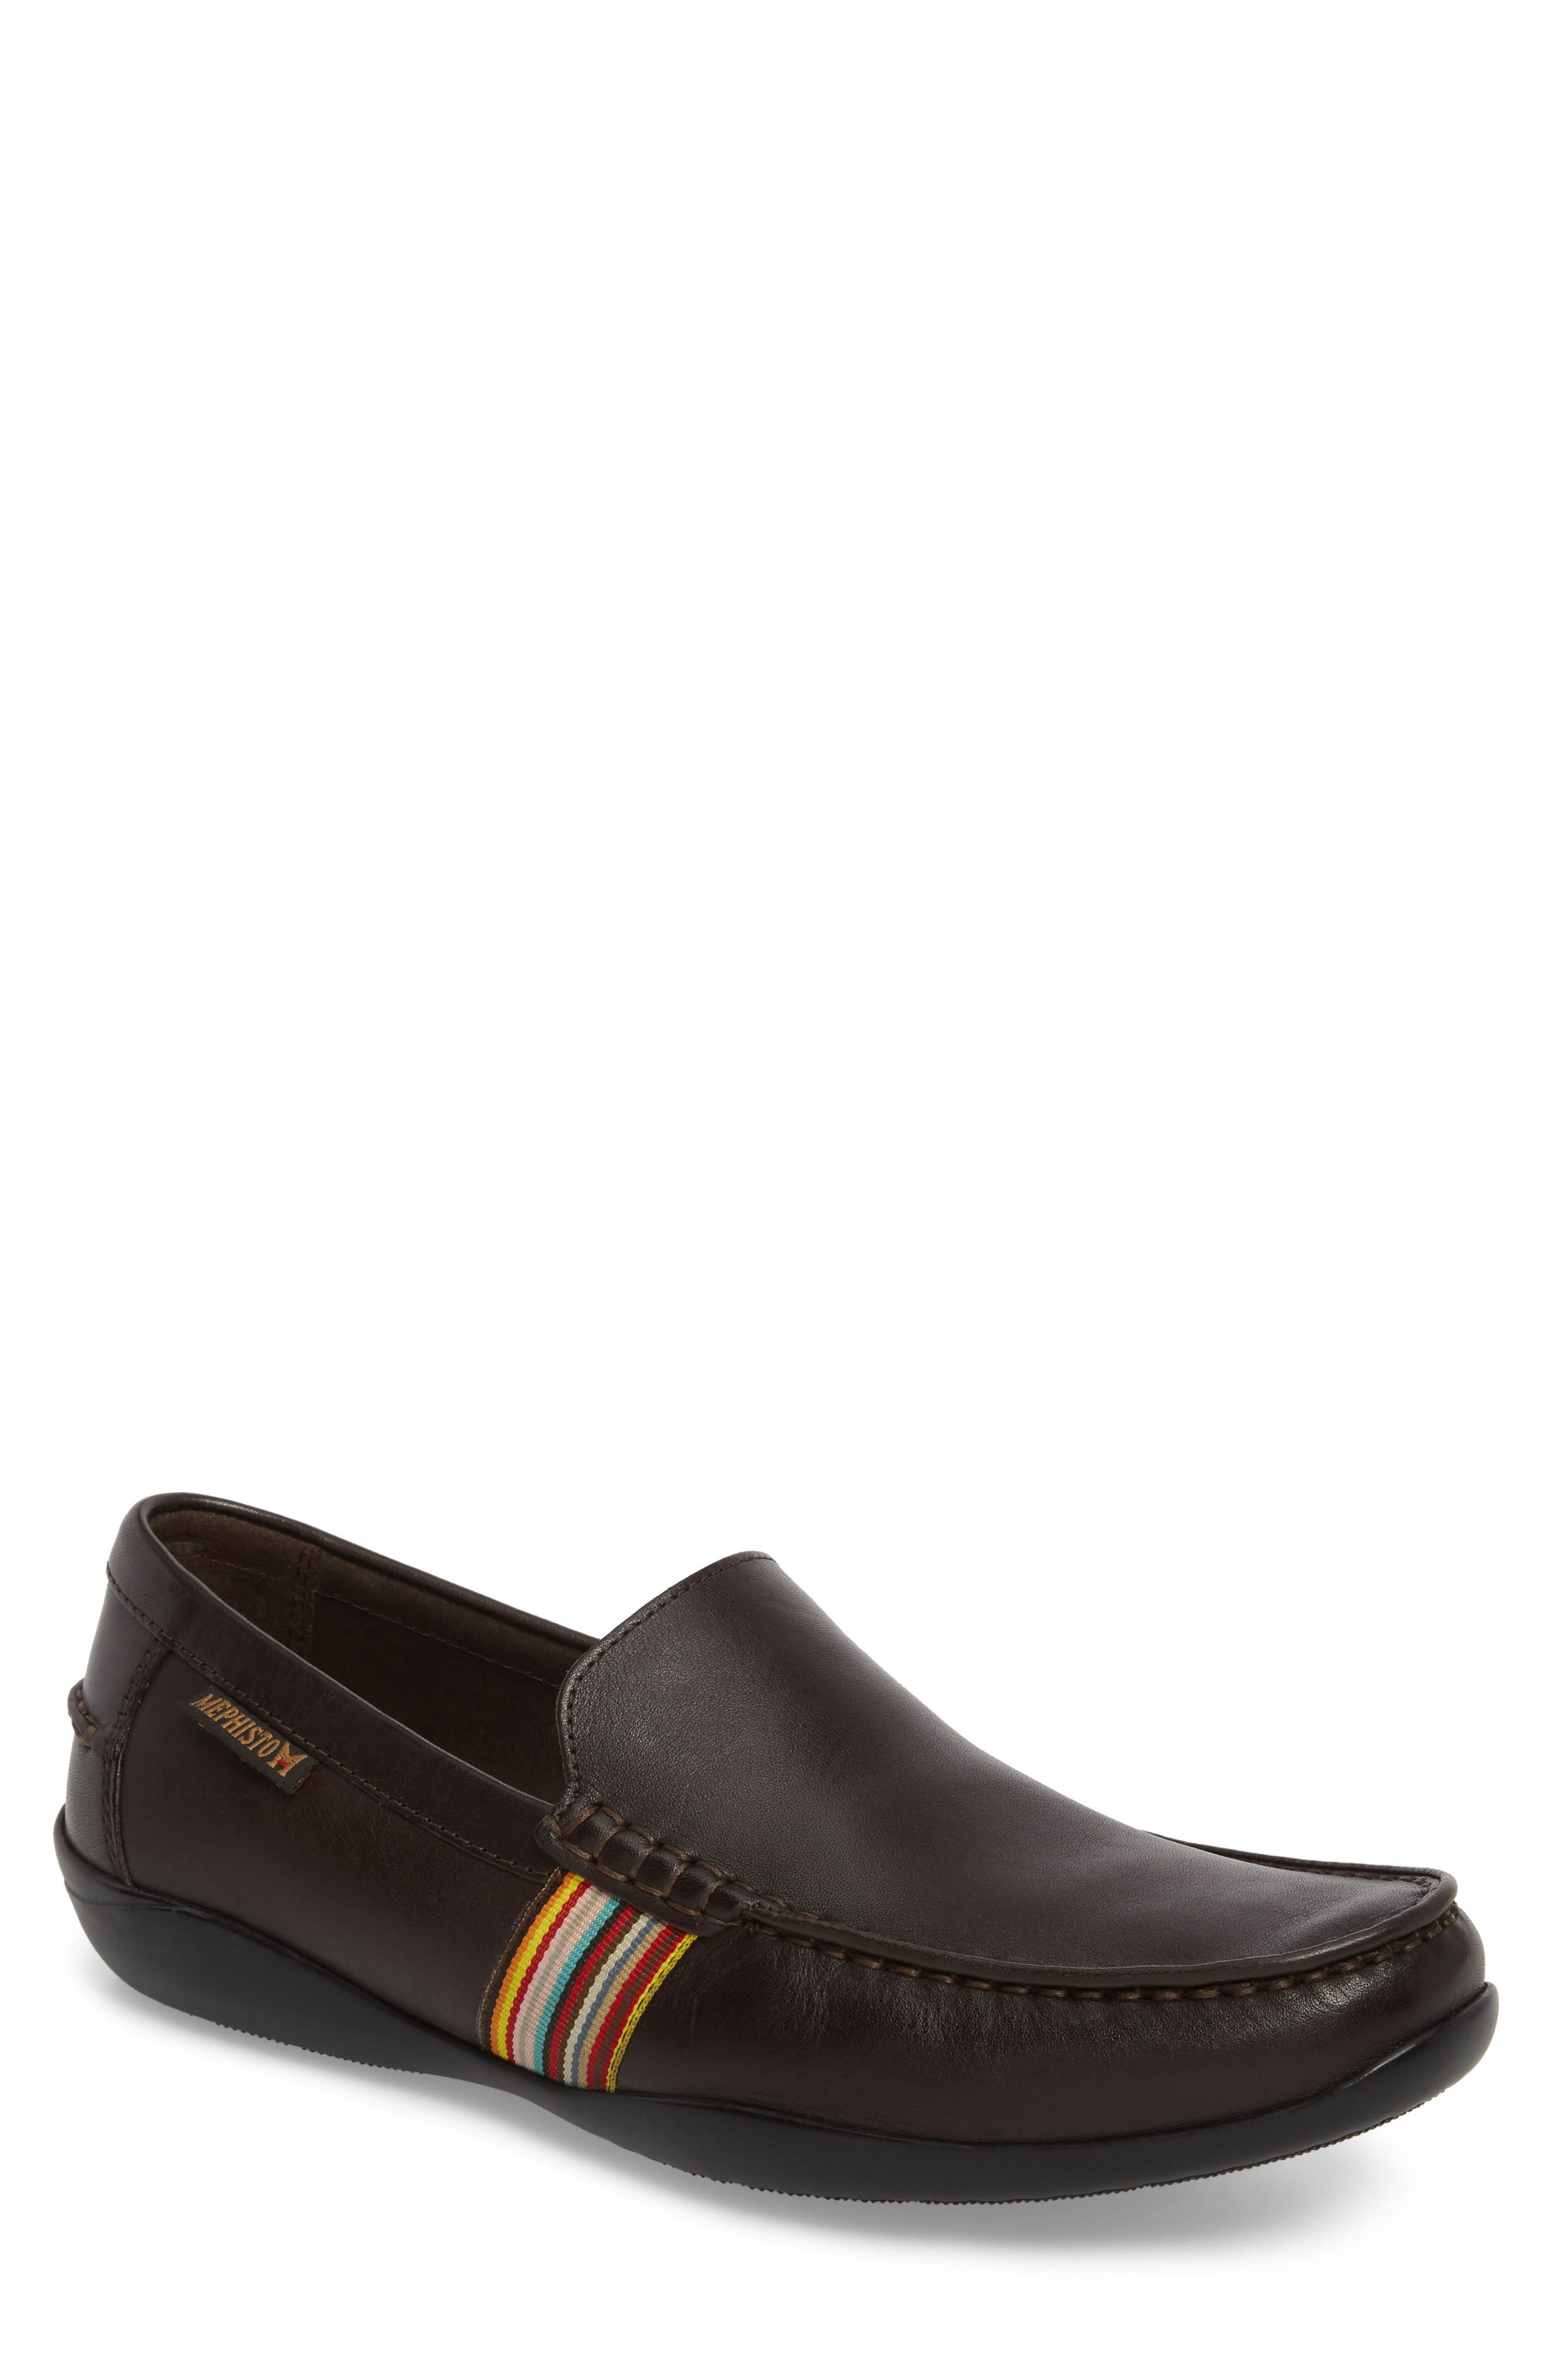 Idris Banded Loafer,                         Main,                         color, Dark Brown Leather